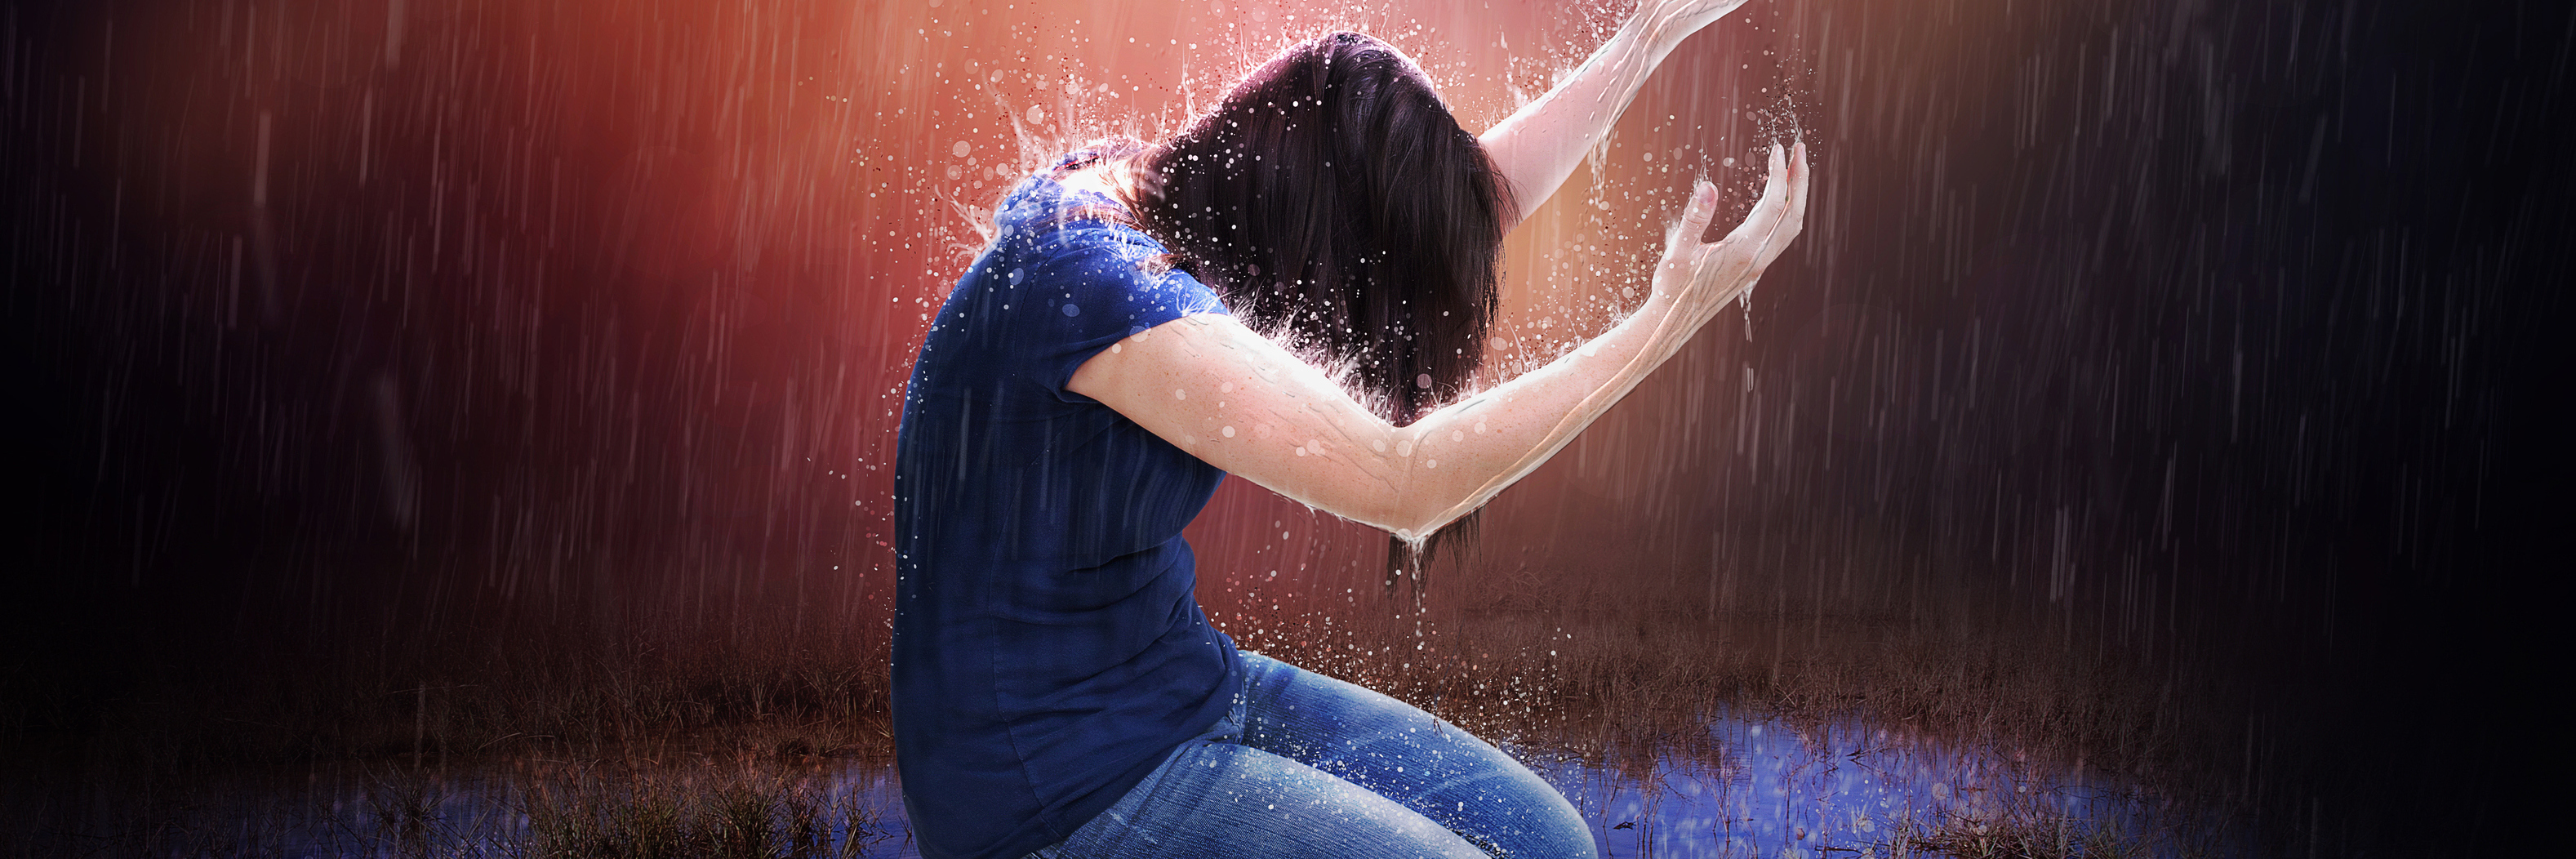 illustration of woman kneeling on ground with arms raised during rain storm